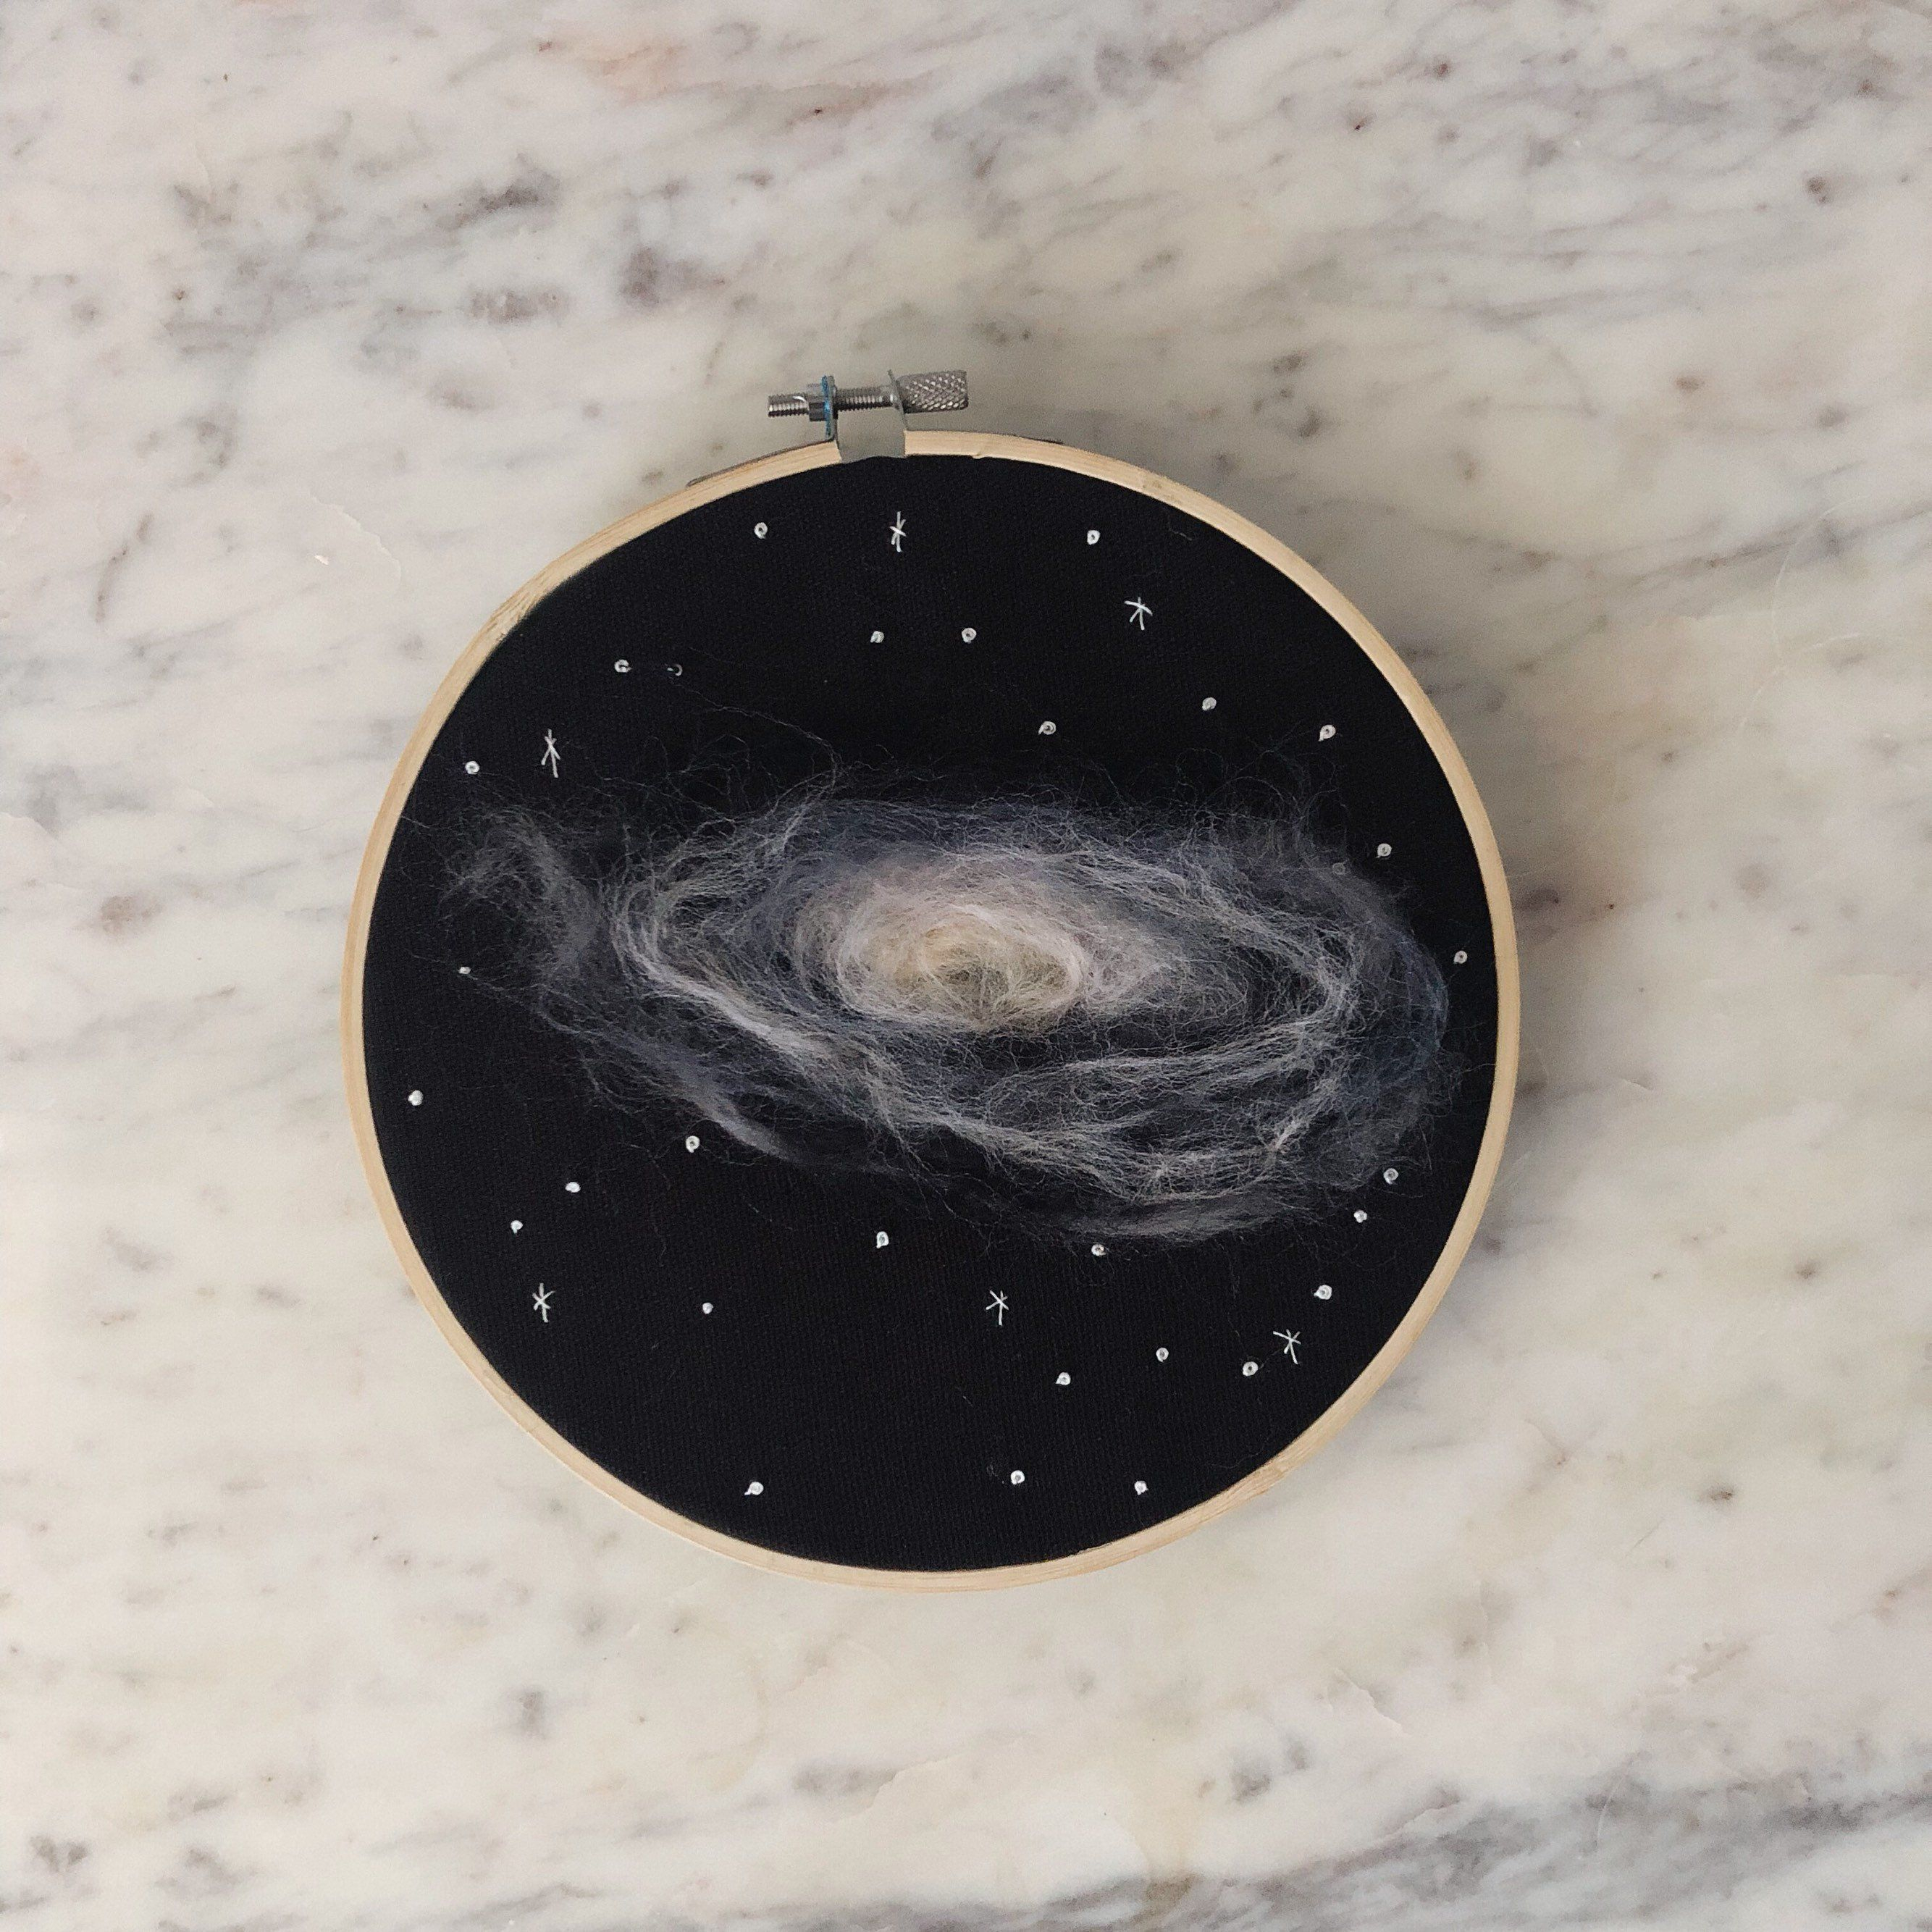 12 Space Decorations Your Home Needs Galaxy Home Decor Ideas